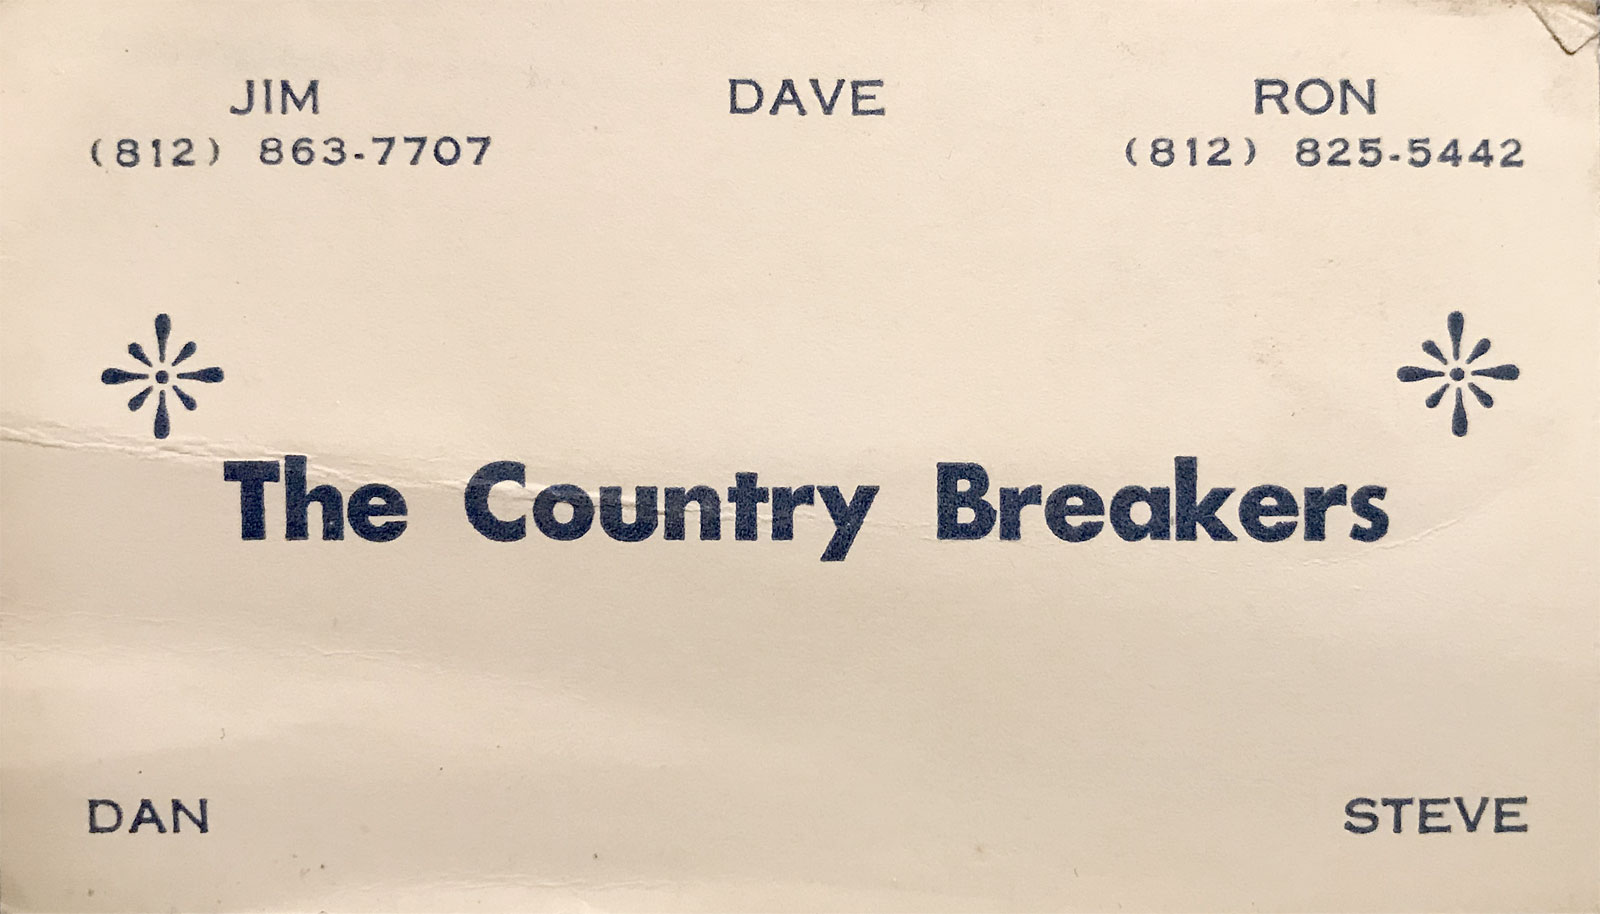 Country Breakers business card, Bloomington Indiana country band formerly know as The On Fours